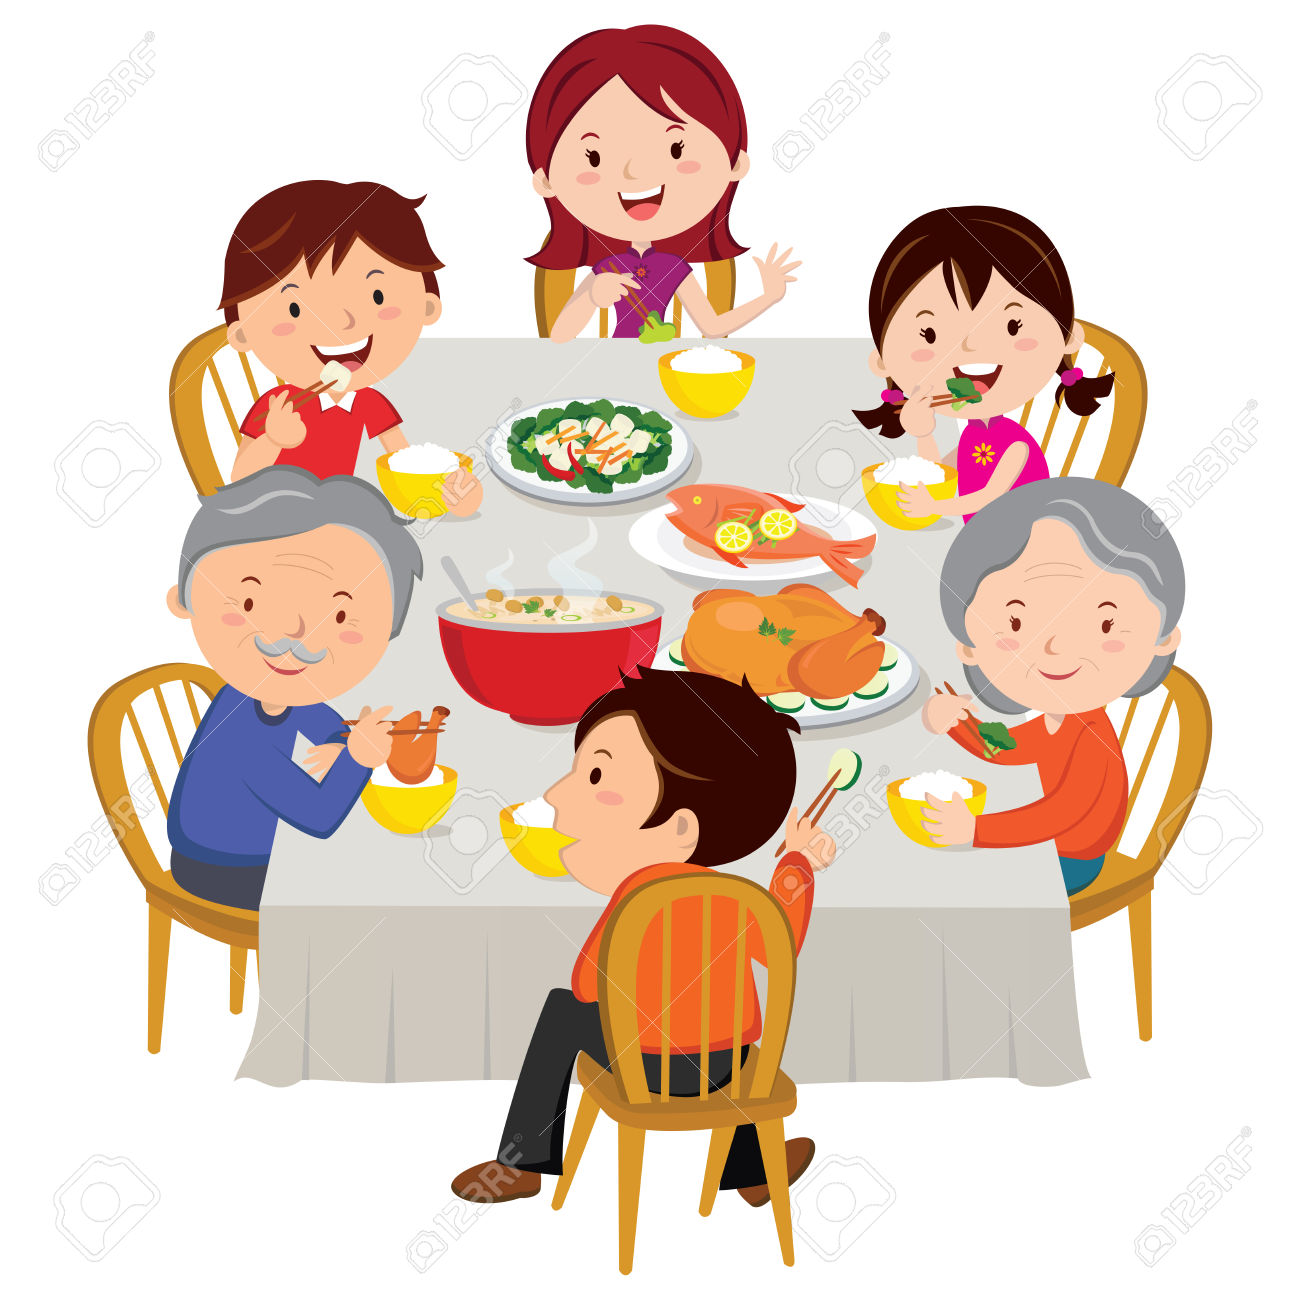 Feast clipart family dining. Dinner free download best